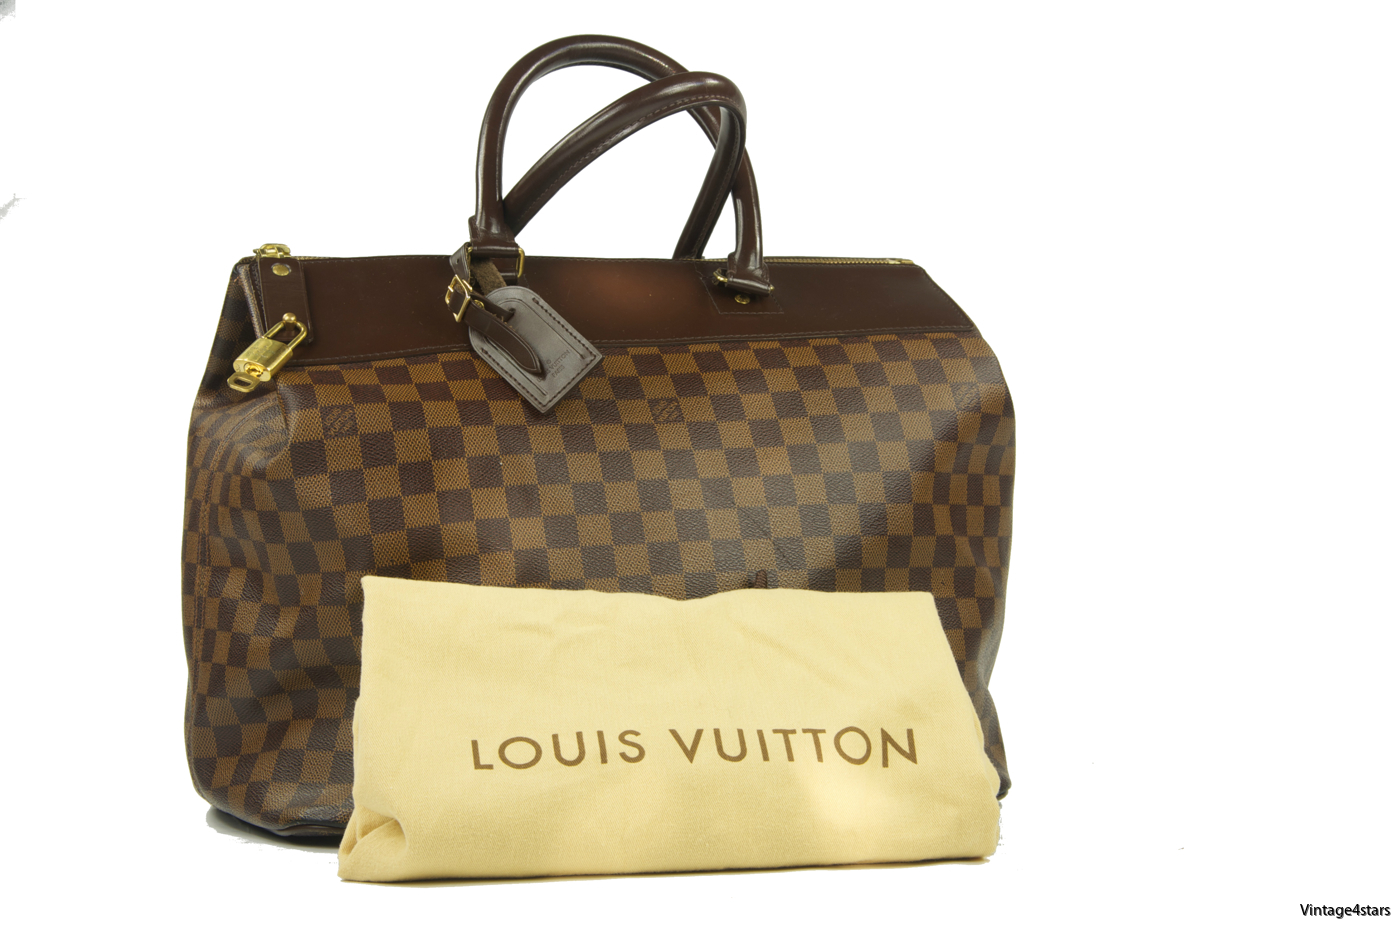 Louis Vuitton Greenwich PM 15